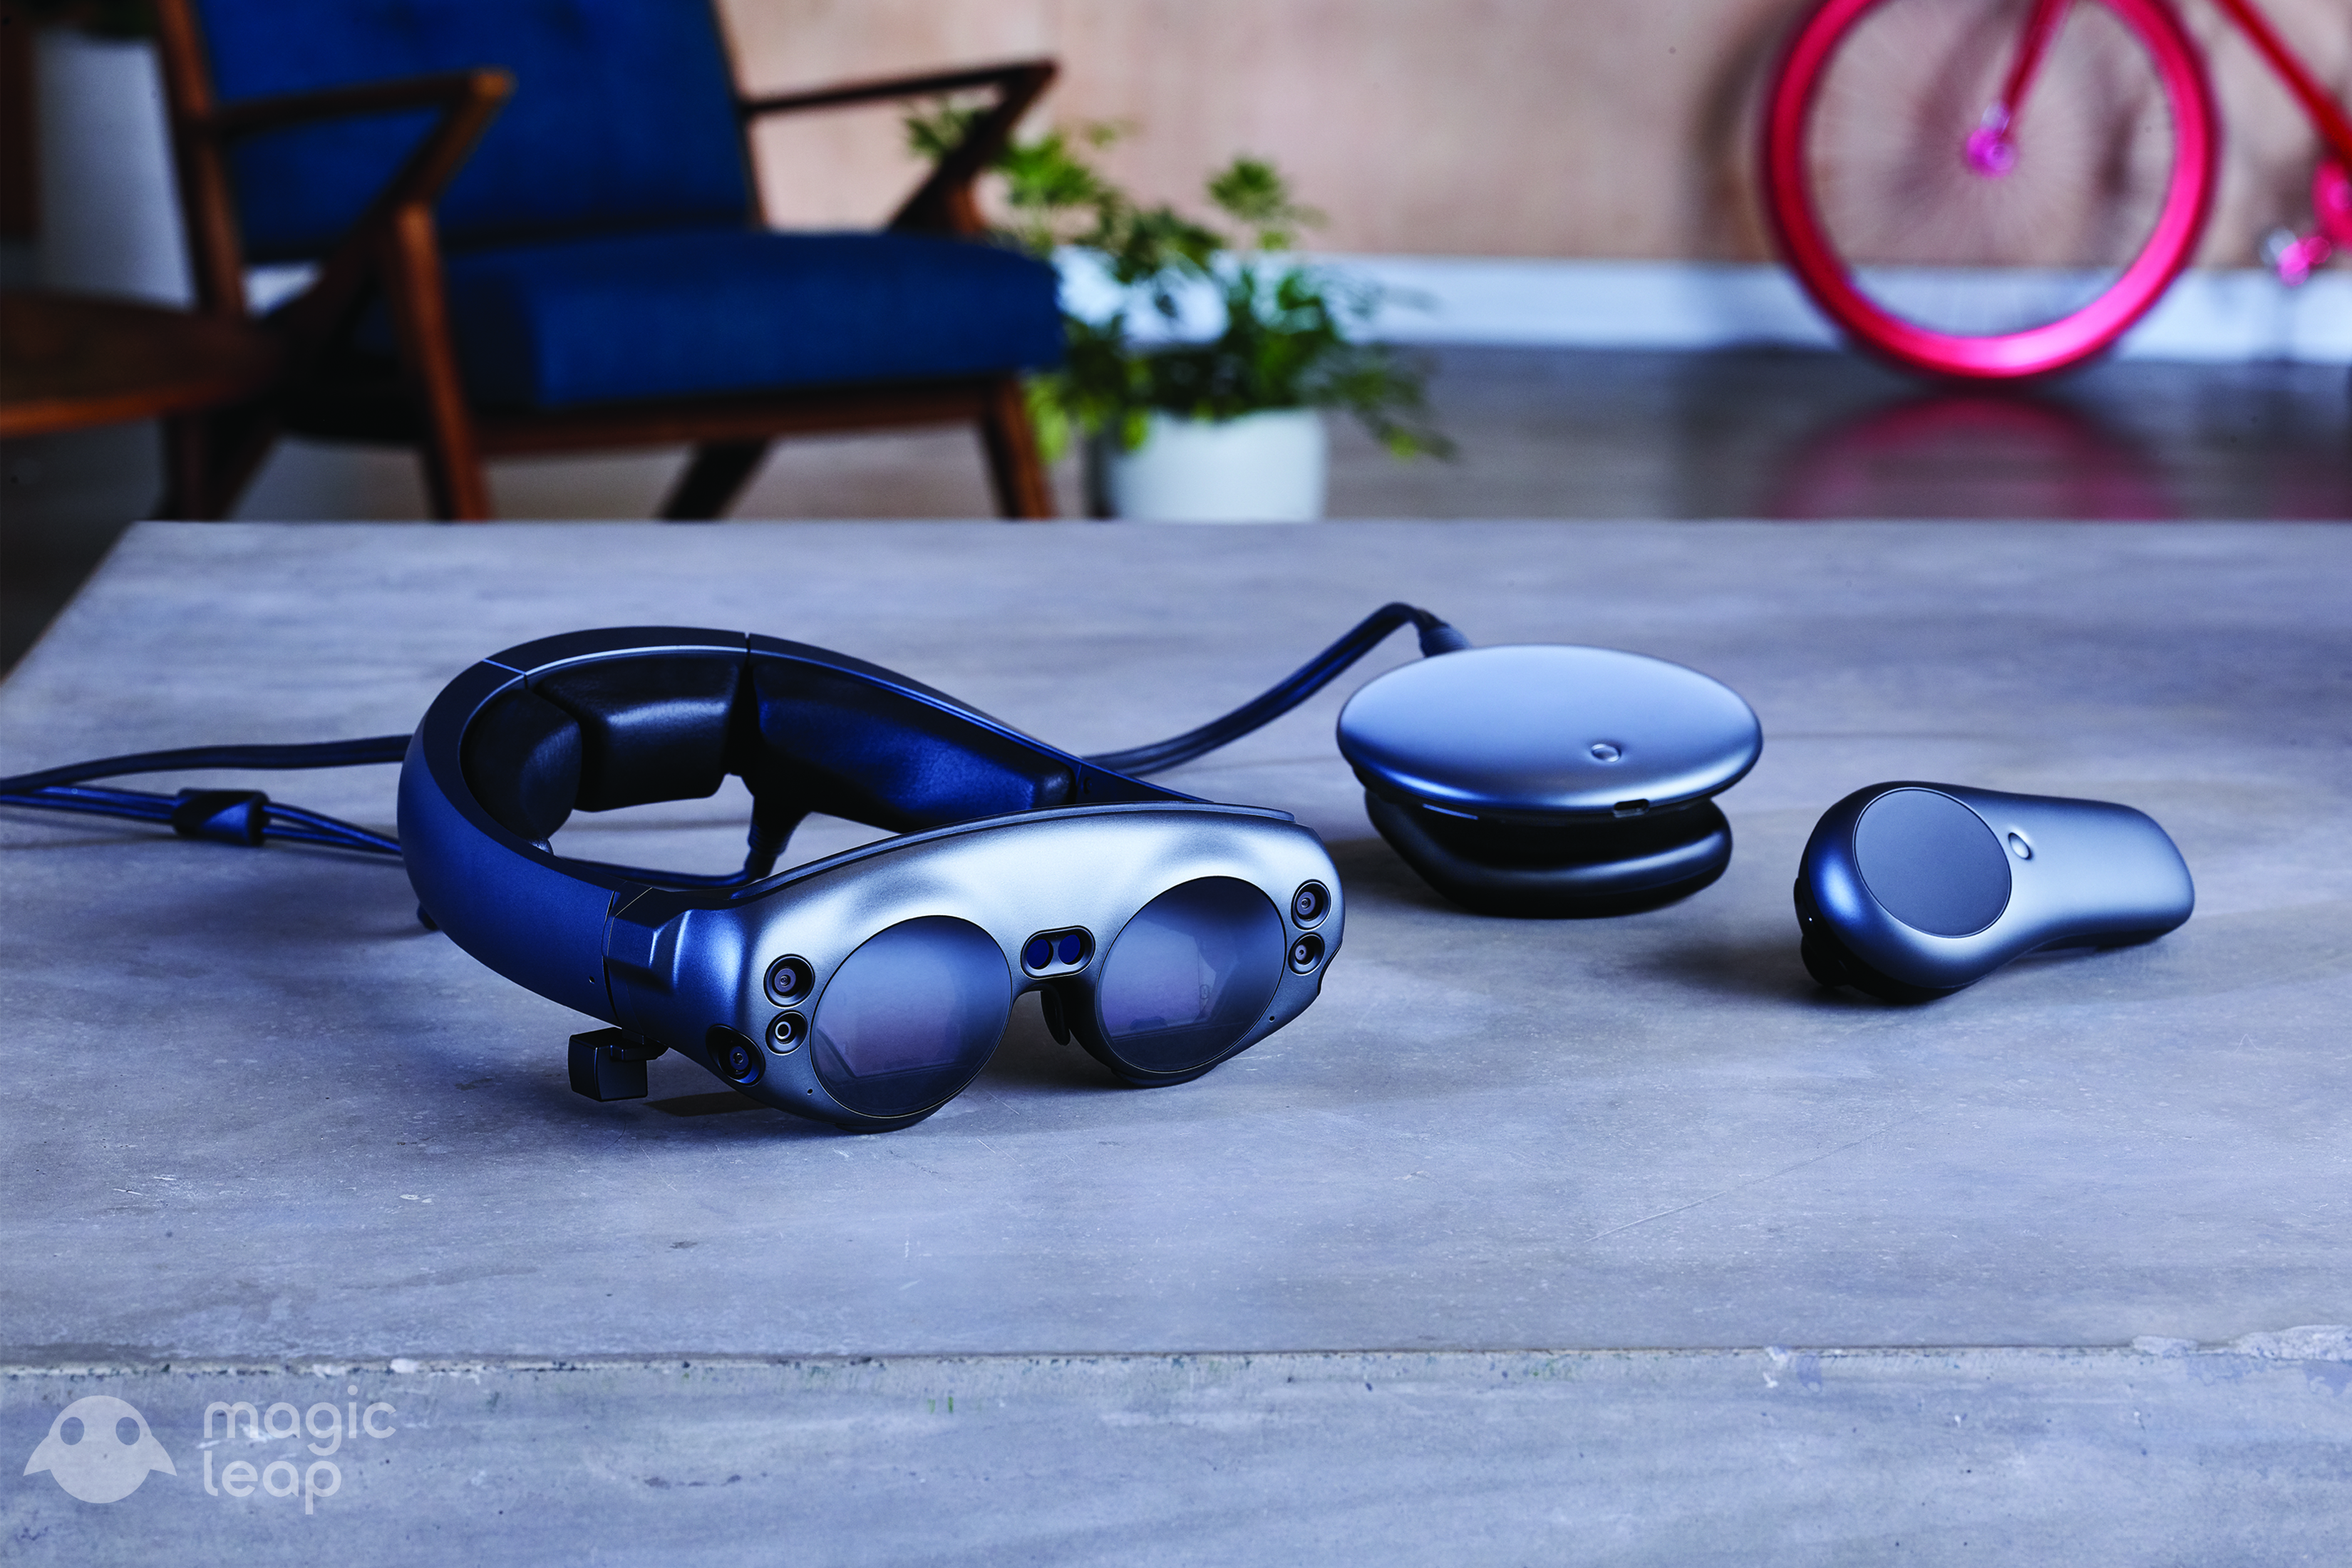 Magic Leap One Mixed Reality Headset now on sale for $2,295